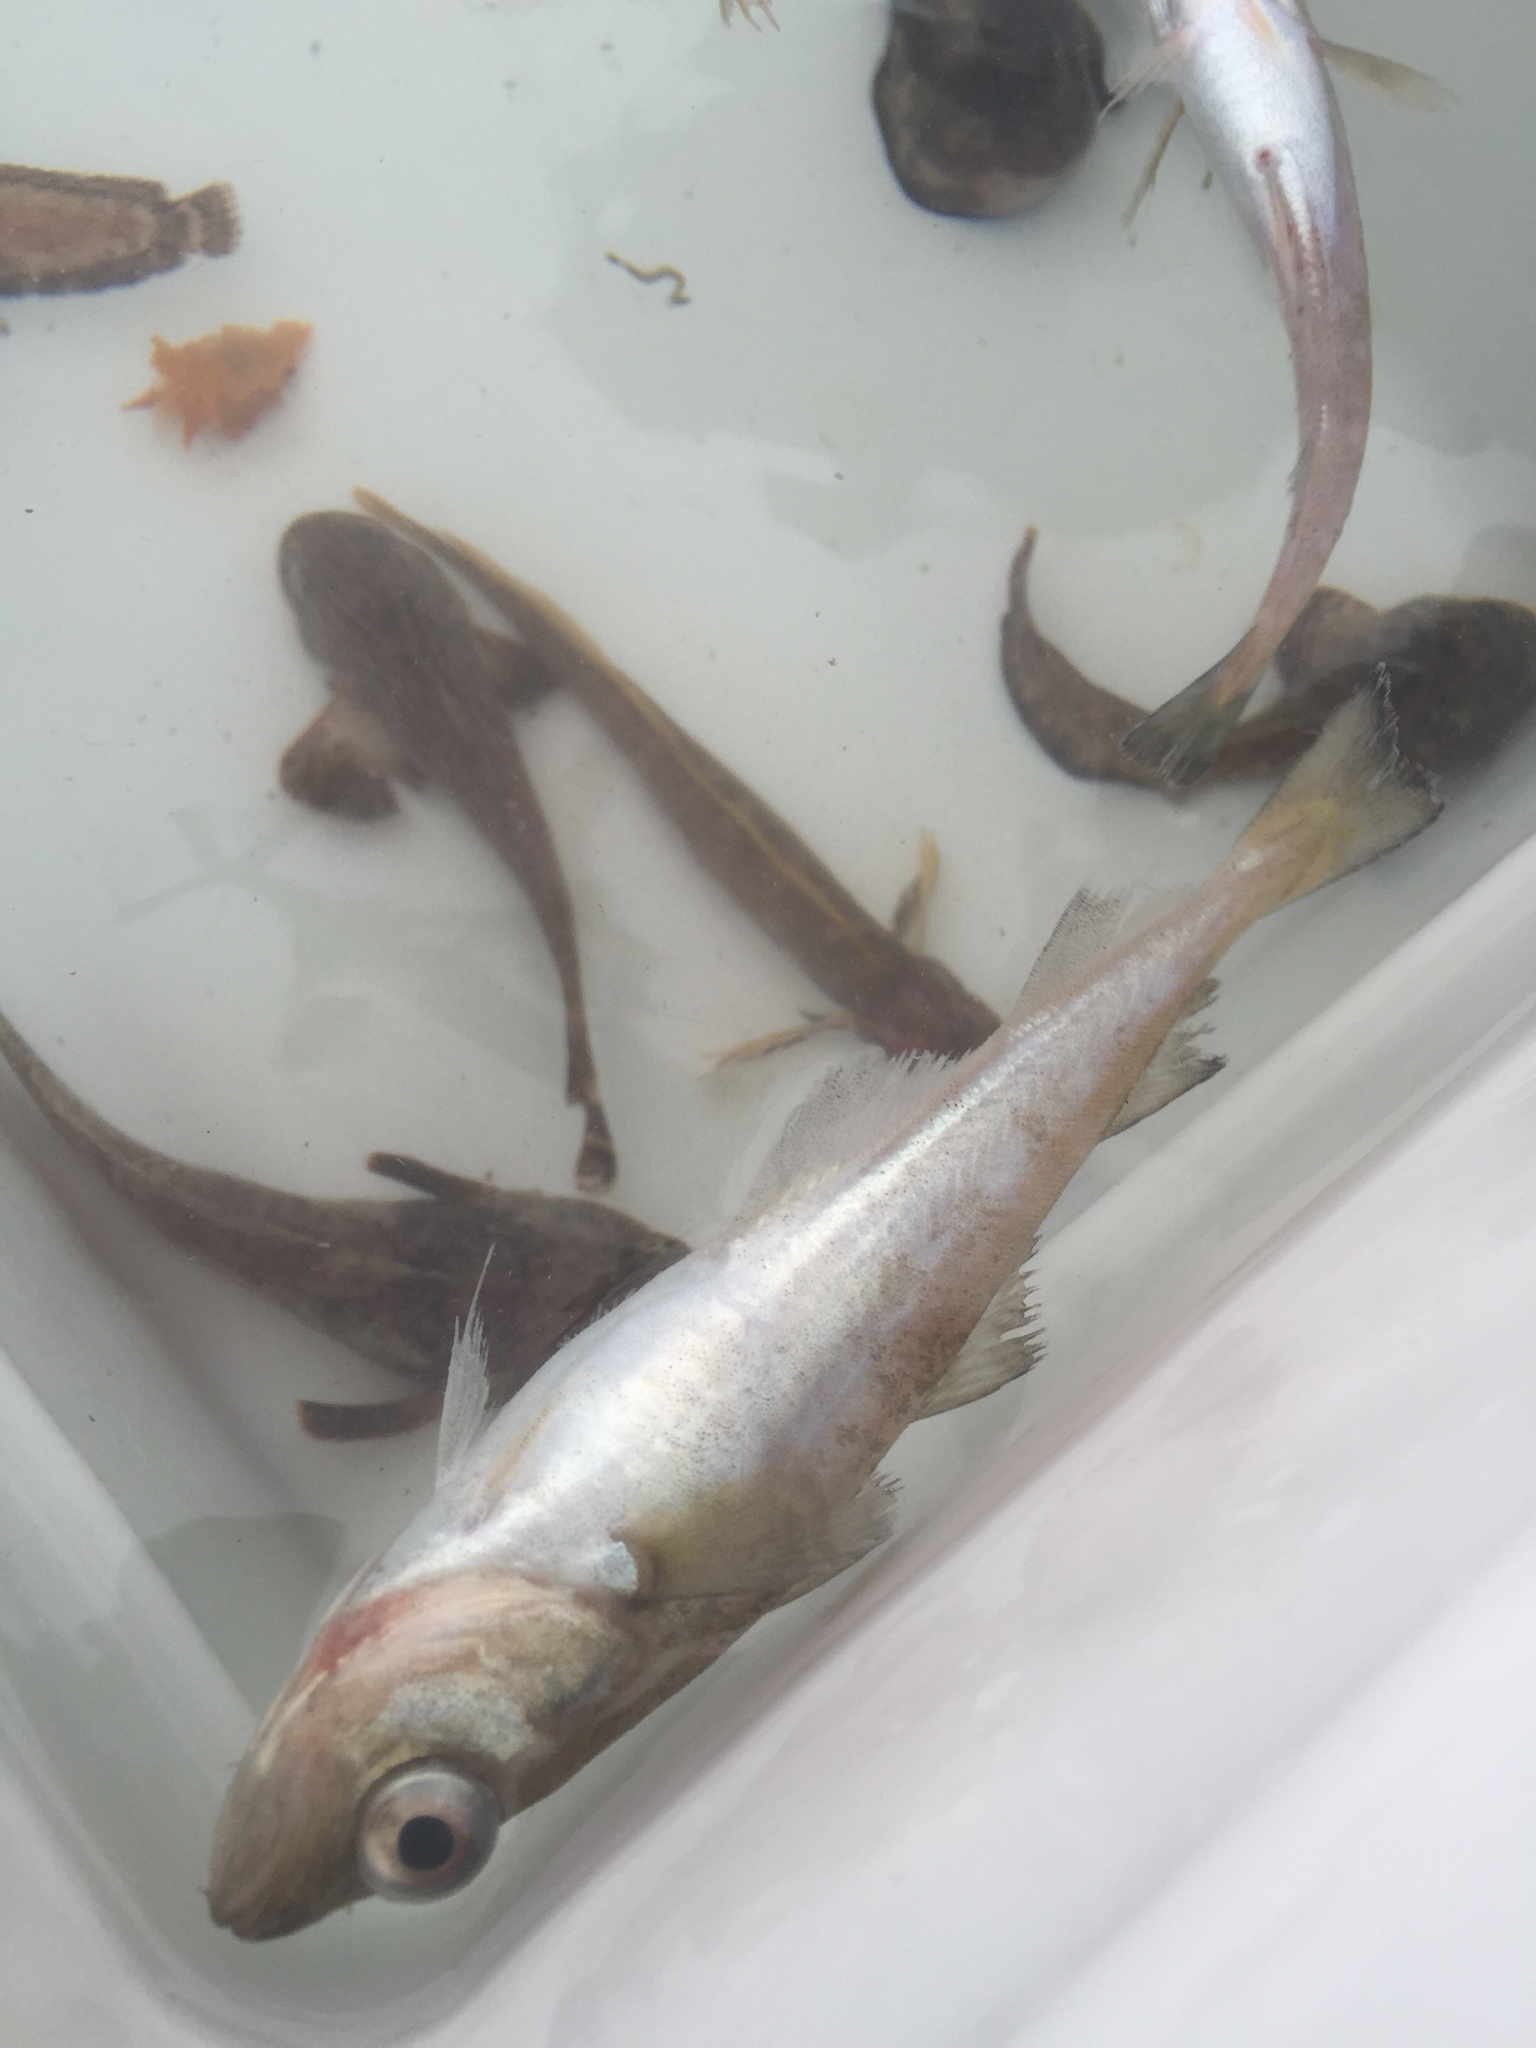 Image of Pacific tomcod